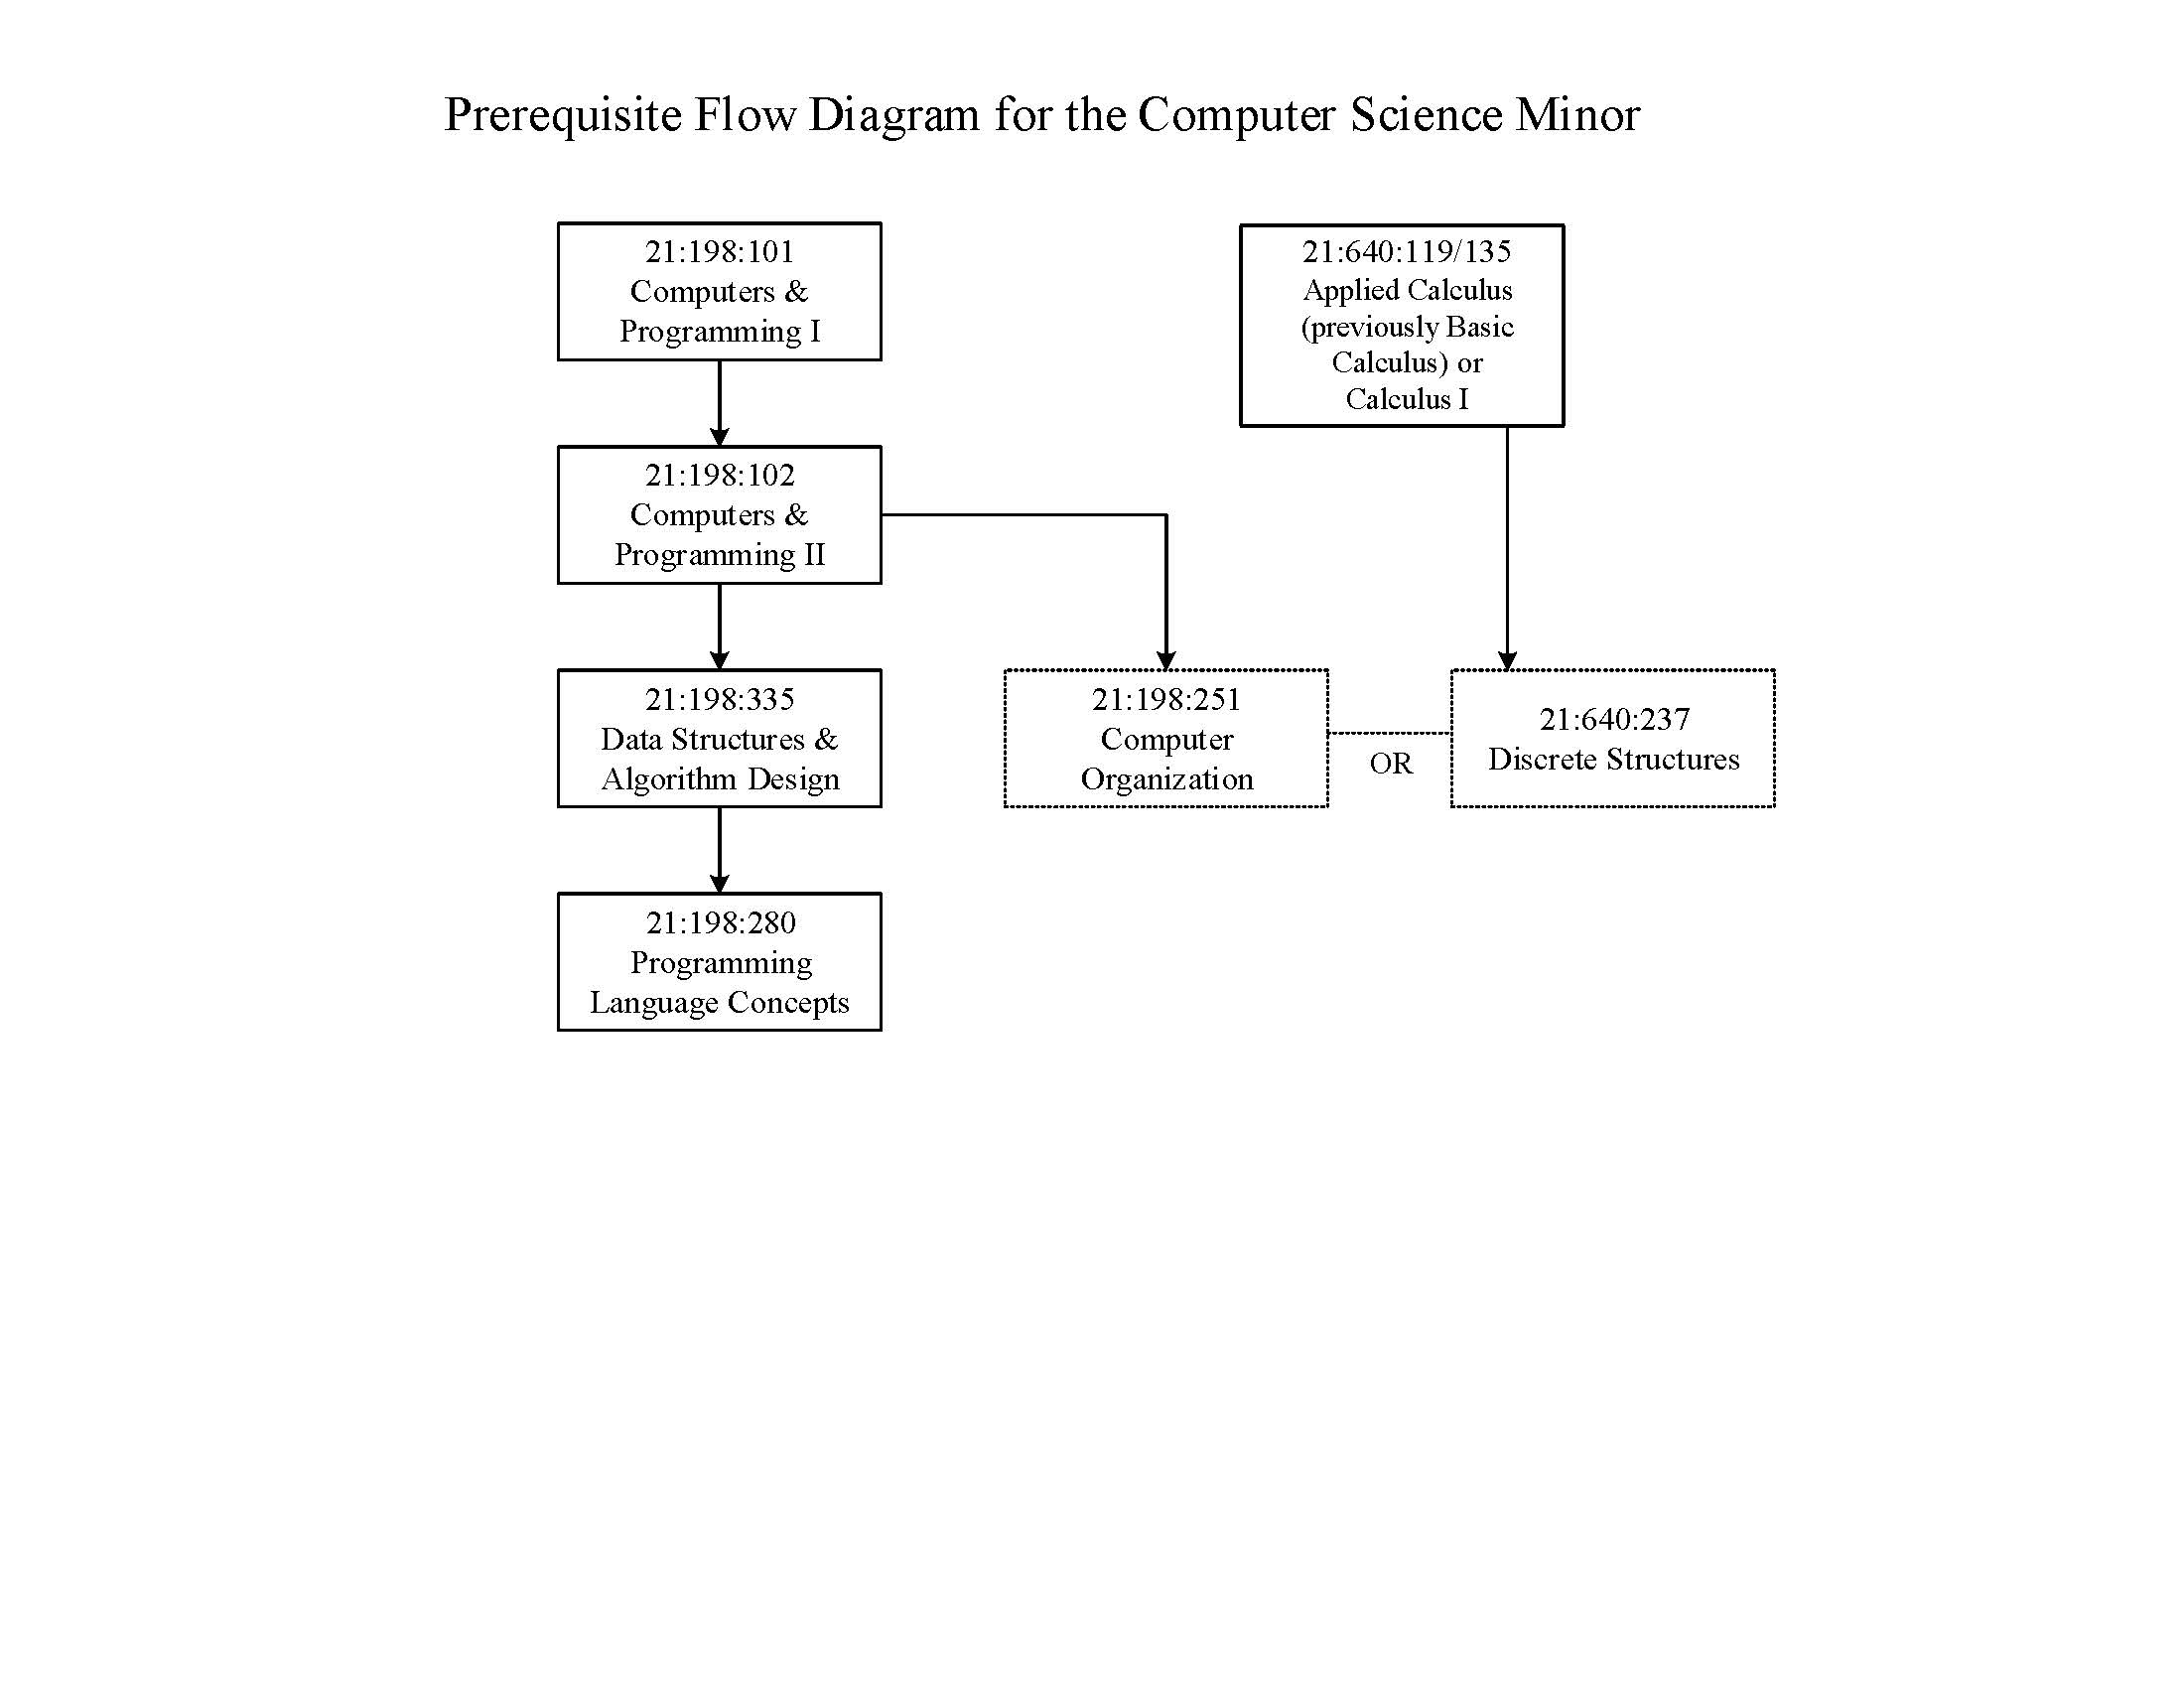 CS Minor flow chart updated 5.23.19